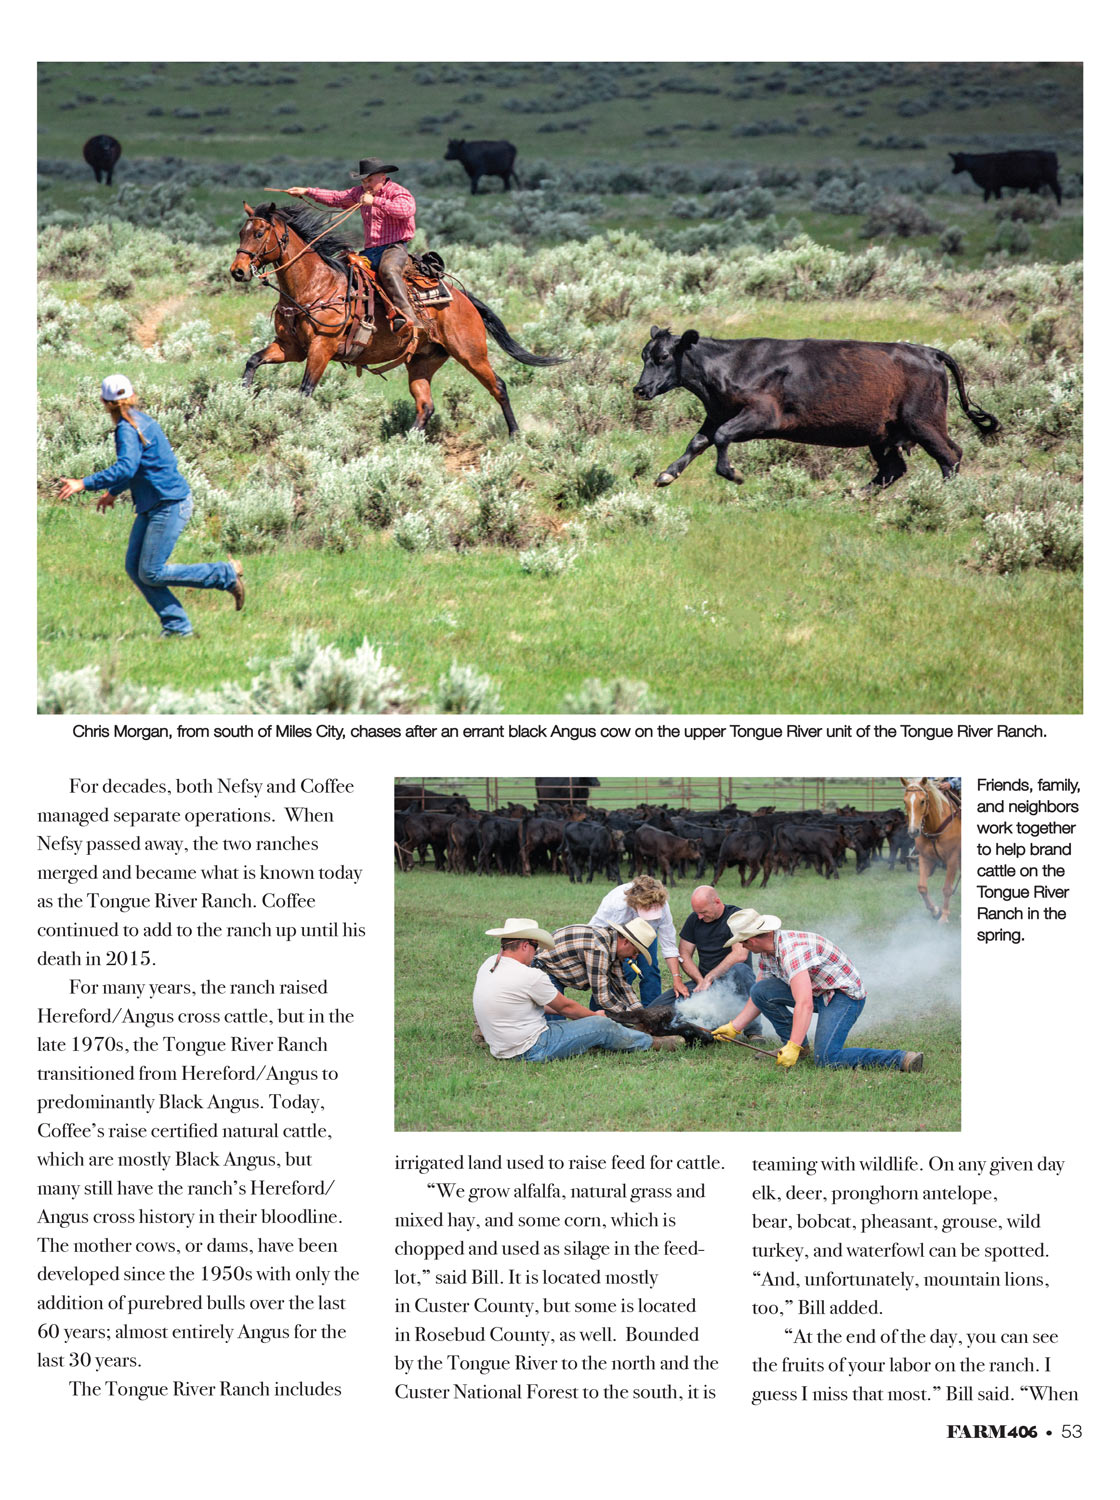 Ranching-Agricultural-Stock-Photos-Used-in-Magazine-04.jpg